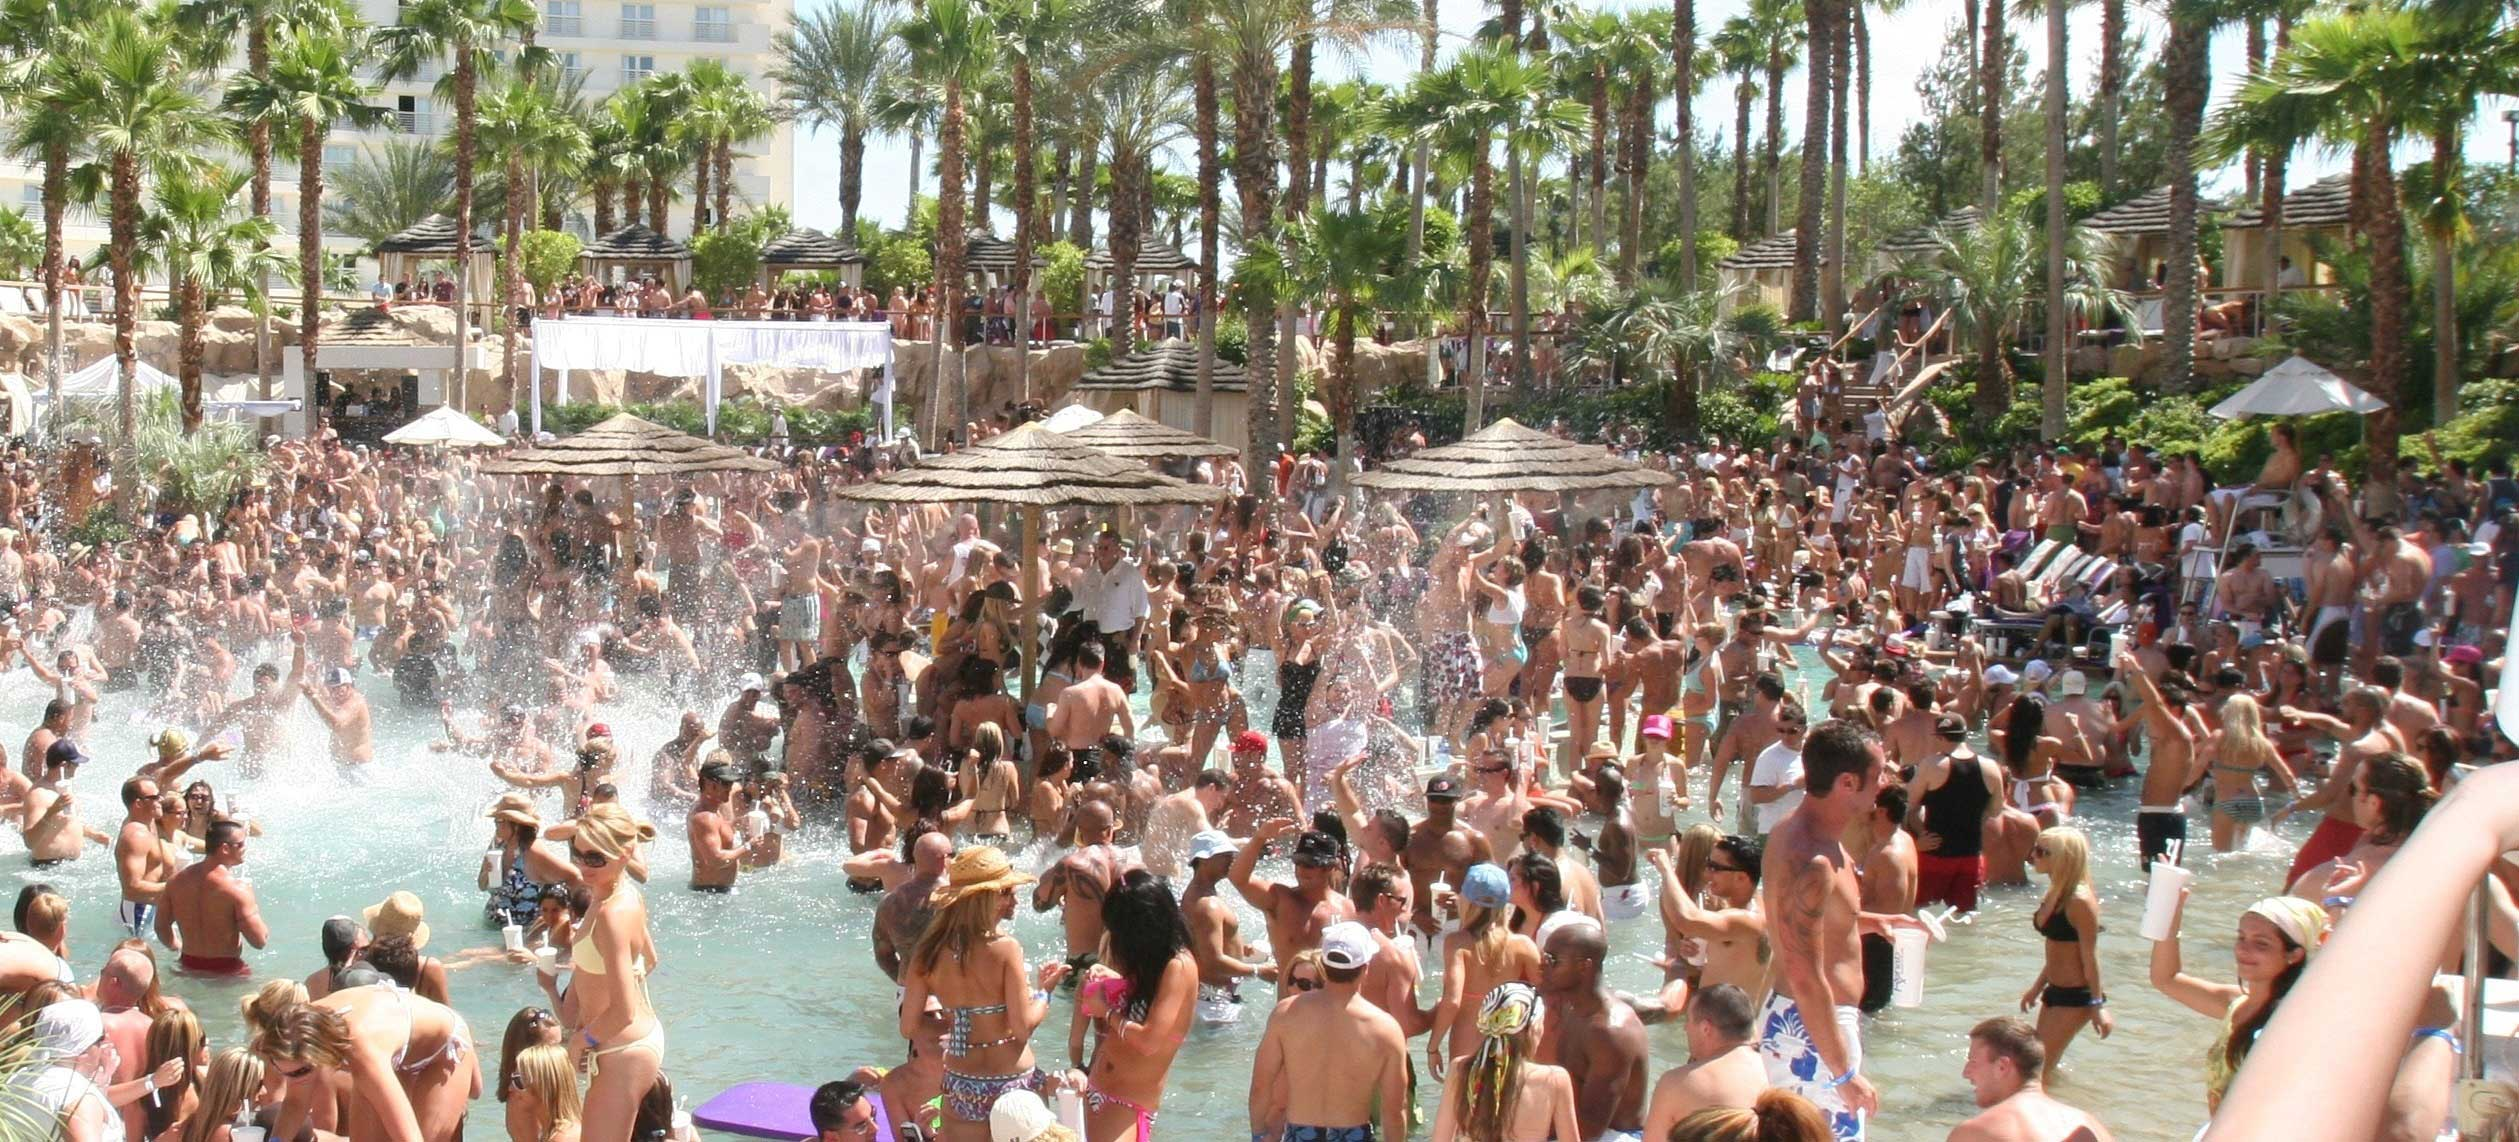 Vegas Pool Parties Take Summertime to the Next Level